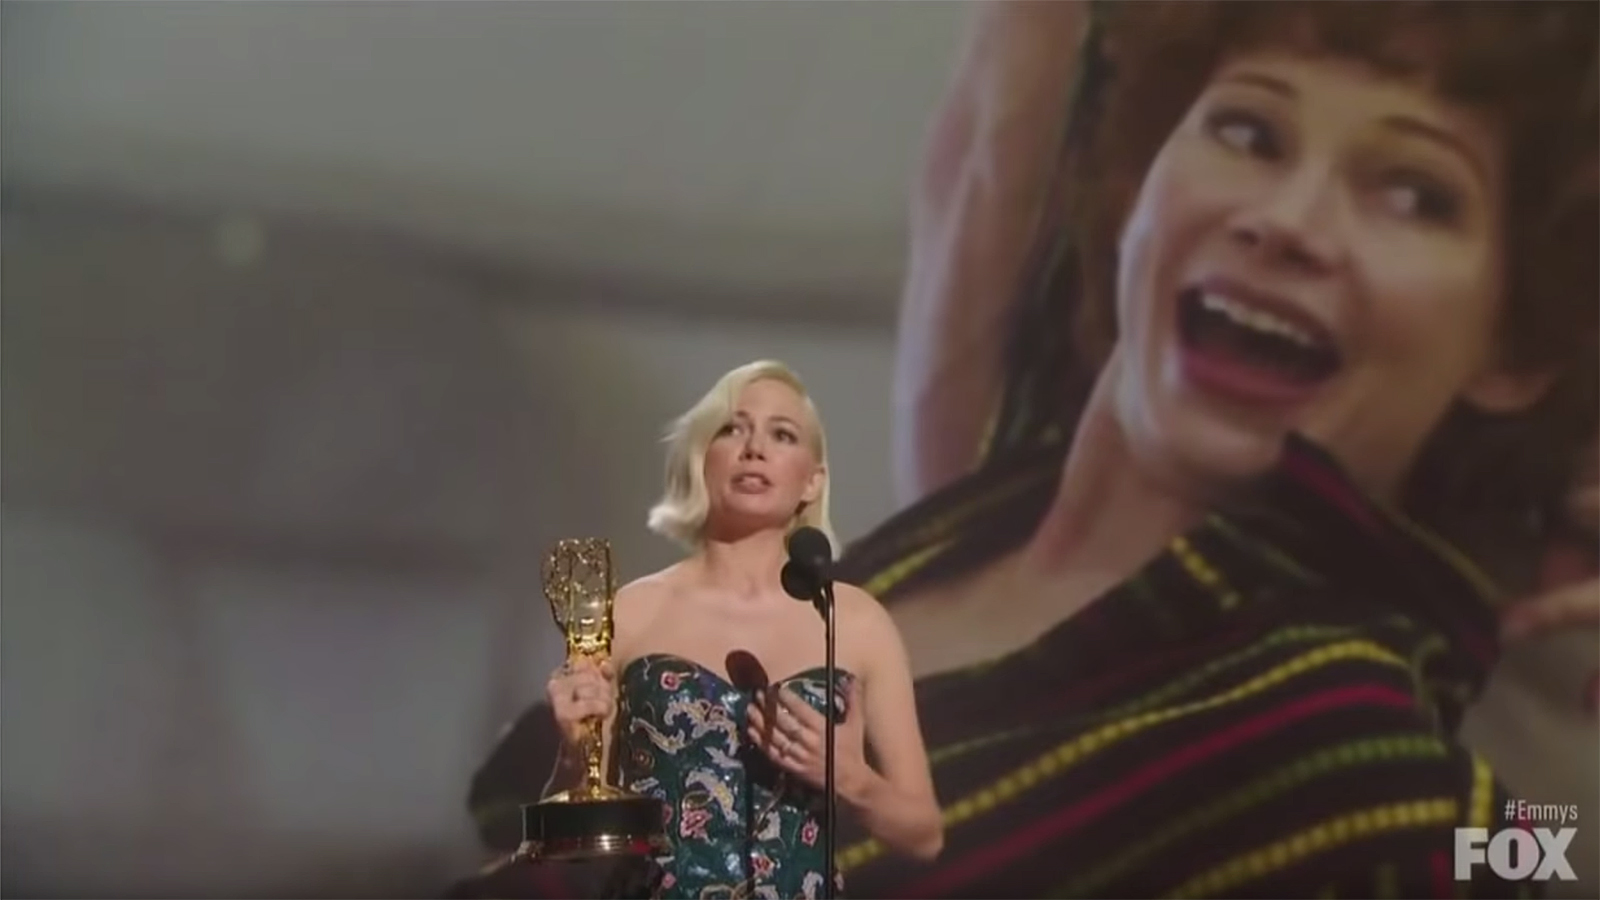 Actress Michelle Williams advocates for equal pay in Emmys speech